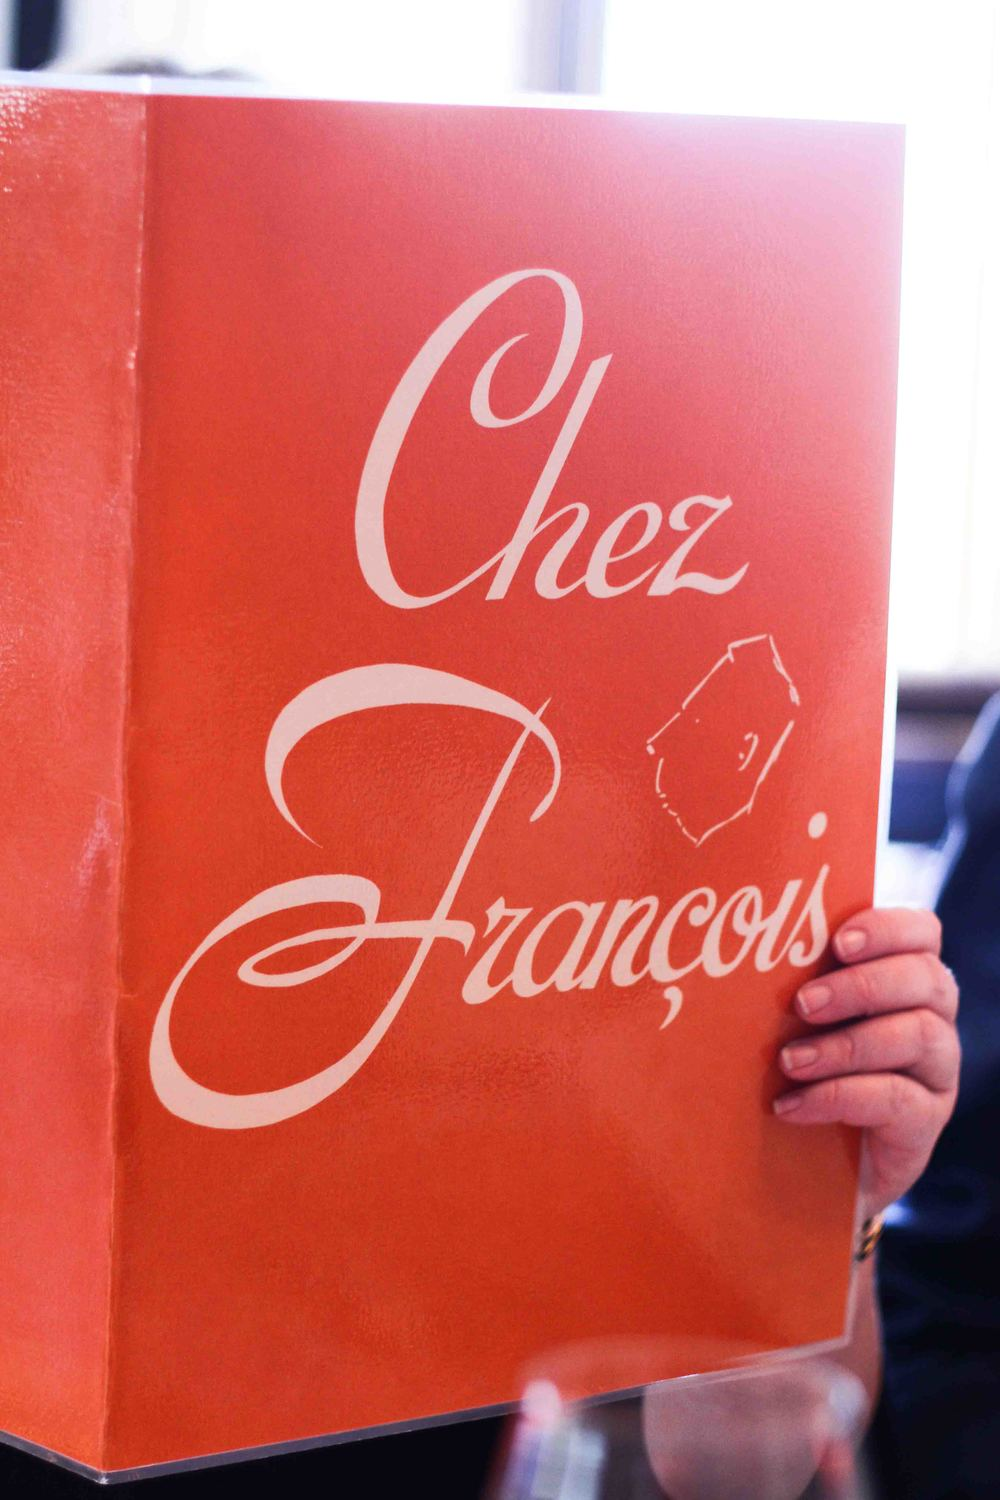 Tommy's aunt and uncle treated us to the most amazing lunch at Chez Francaois in Great Falls, Virginia.